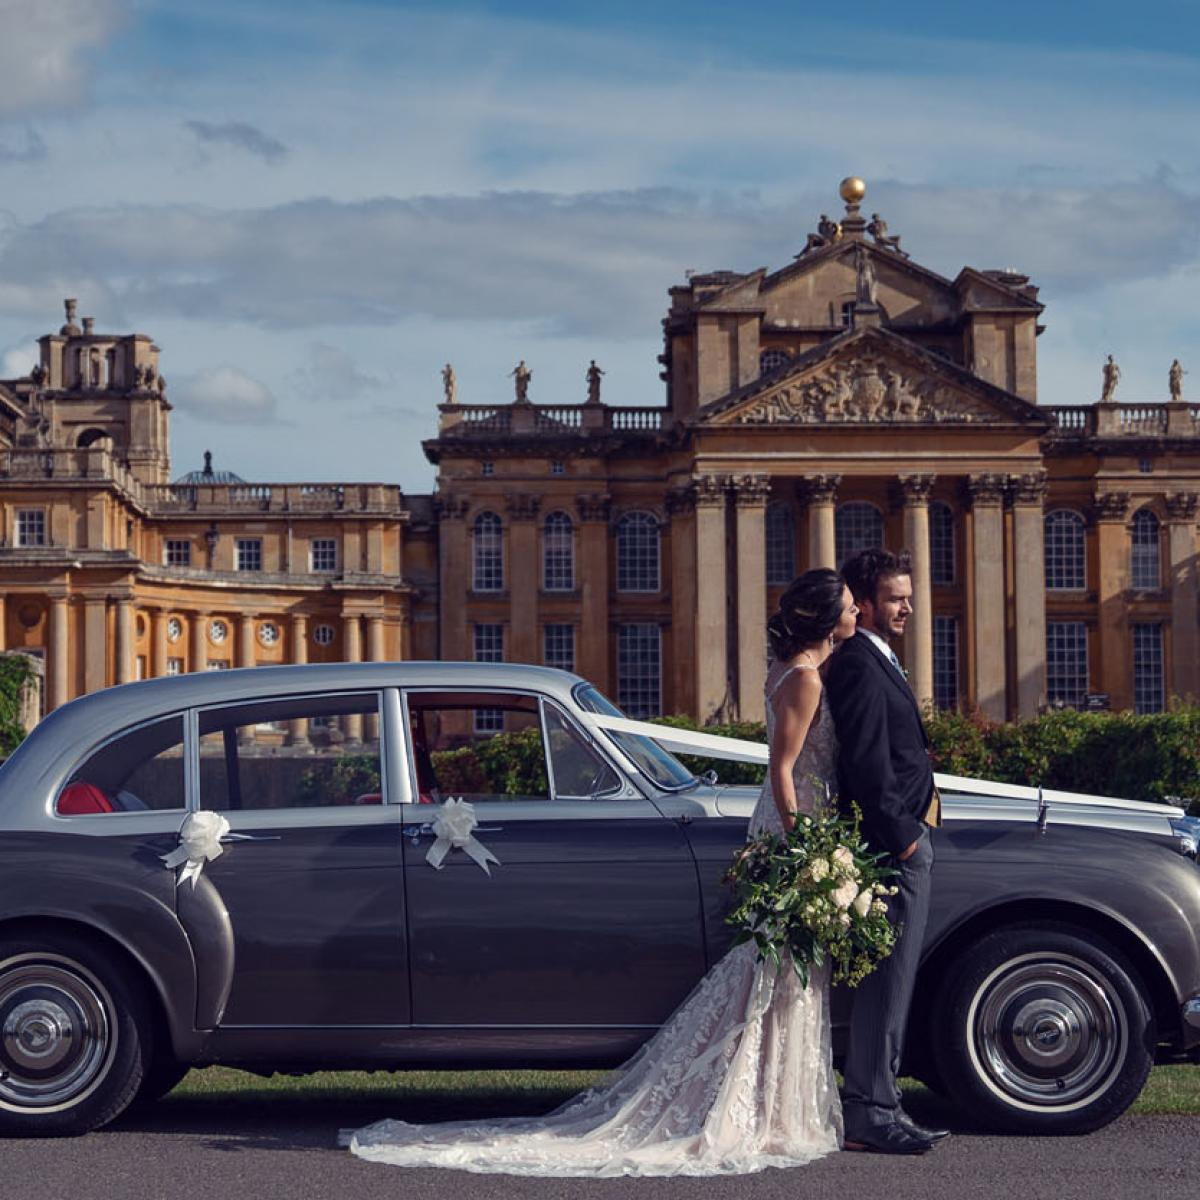 Blenheim Palace; A Special Wedding Destination | UK ...